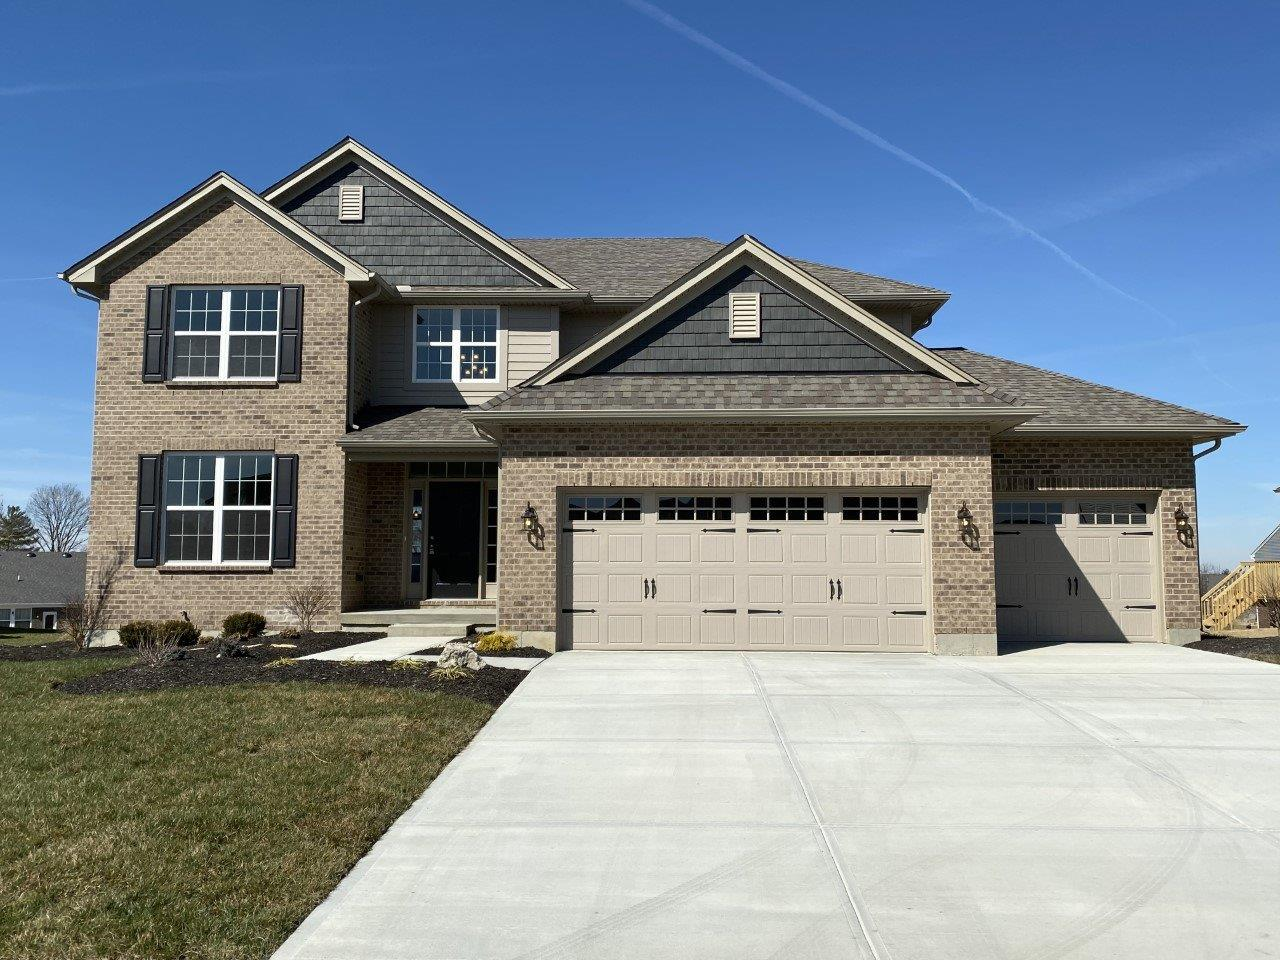 Property for sale at 5280 Mariners Way, Liberty Twp,  Ohio 45011